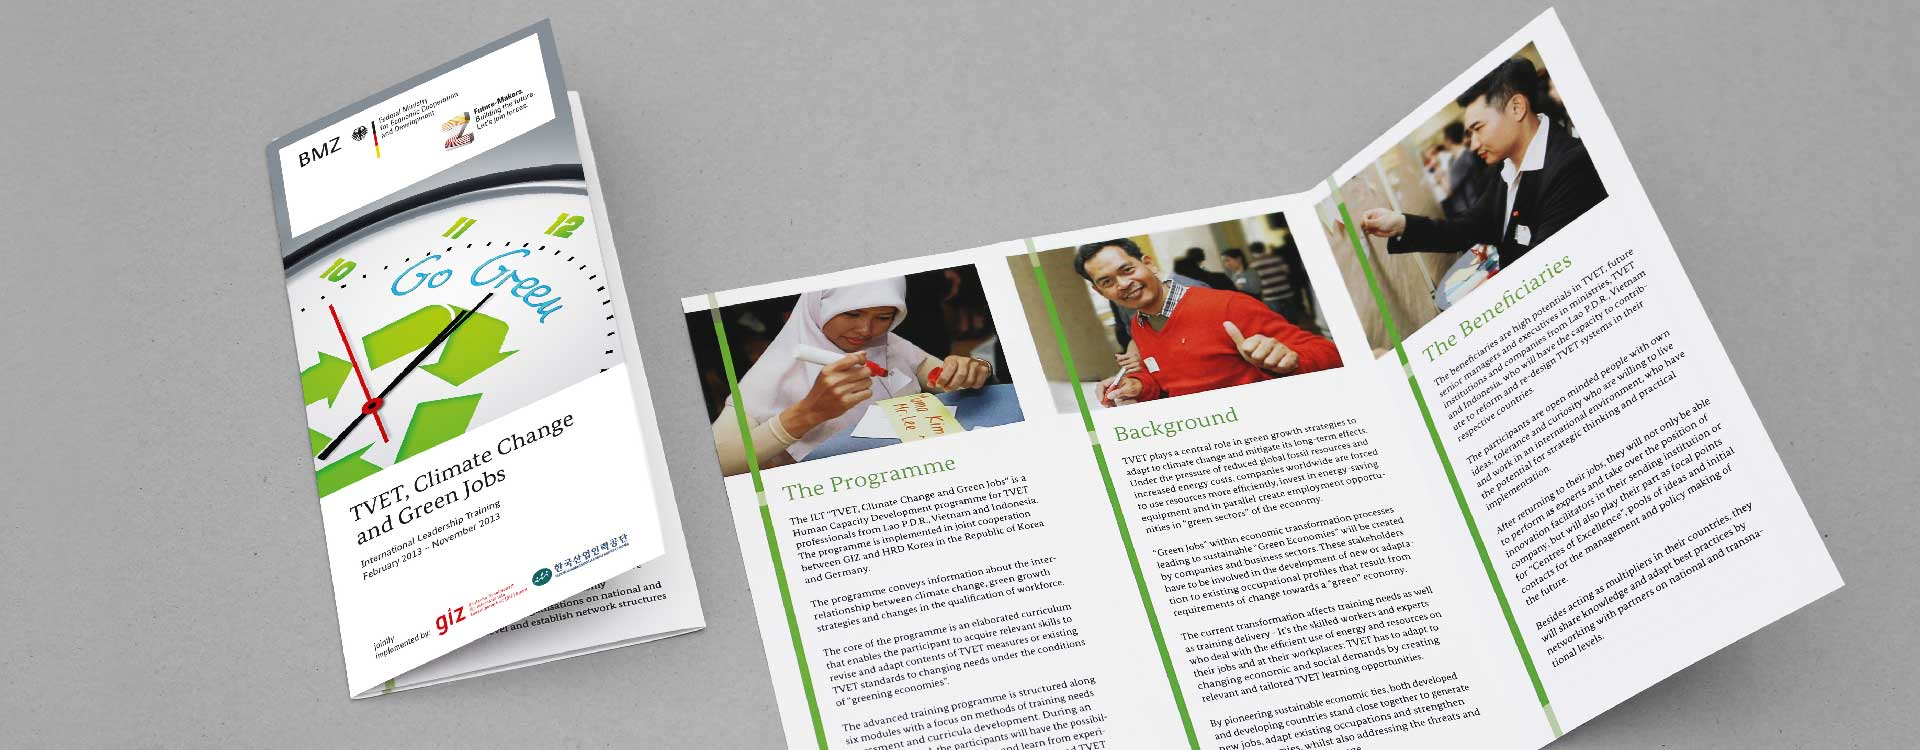 Leaflet for the project of the GIZ Magdeburg Technical Vocational Education and Training, Climate Change and Green Jobs; Design: Kattrin Richter | Graphic Design Studio